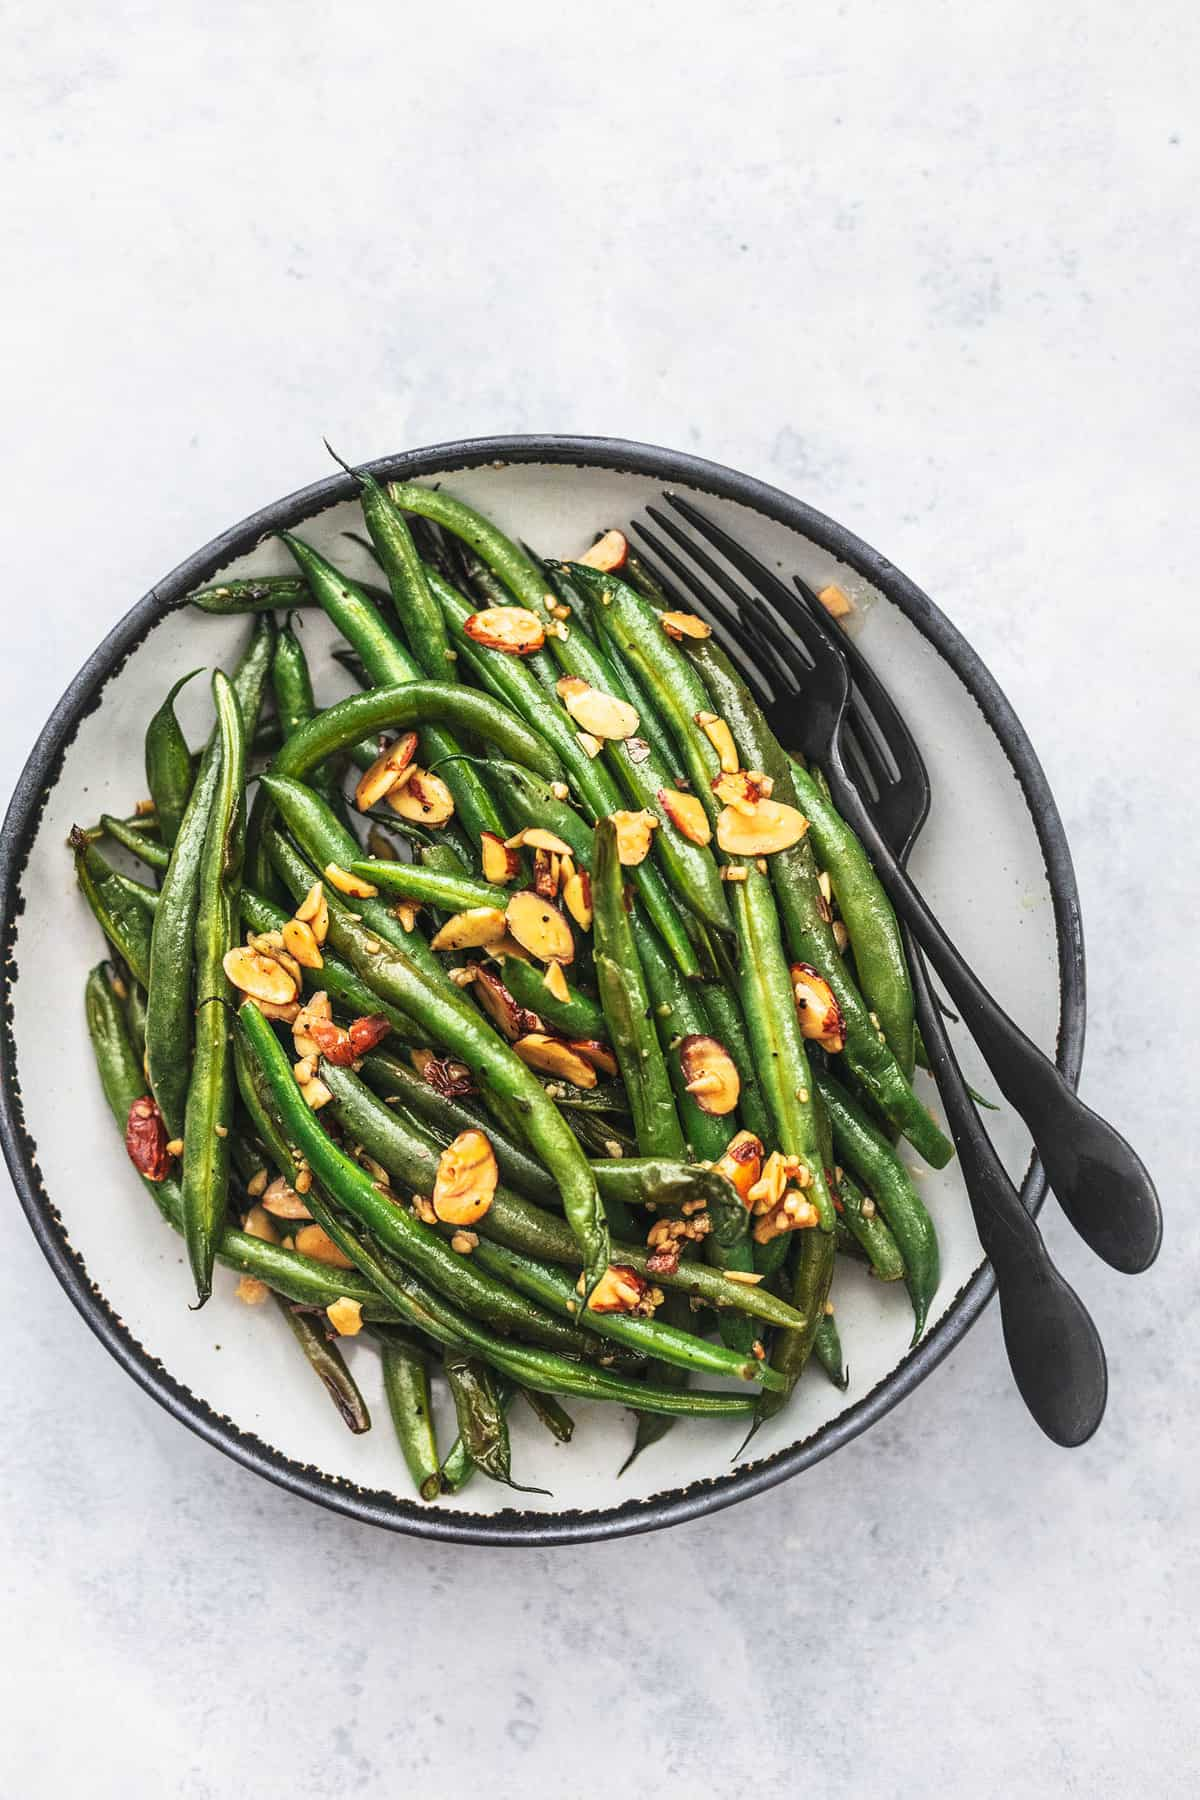 green beans on plate with fork